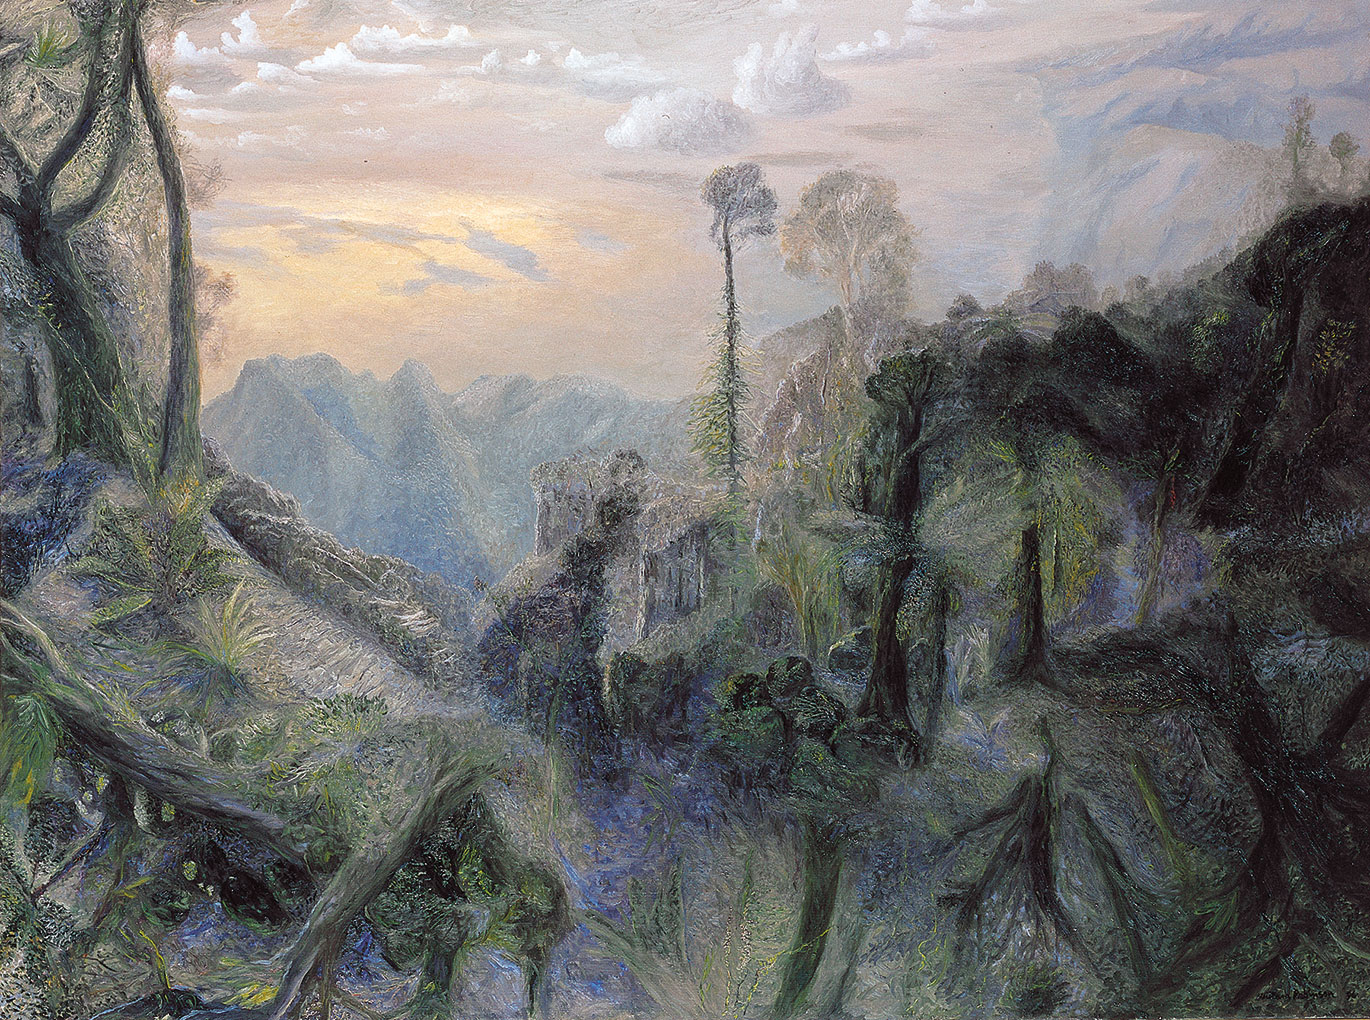 William ROBINSON 'The sea with morning sun from Springbrook' 1996, oil on linen. QUT Art Collection, Purchased 2013 through the William Robinson Art Collection Fund and partial donation by Michael Gleeson-White.